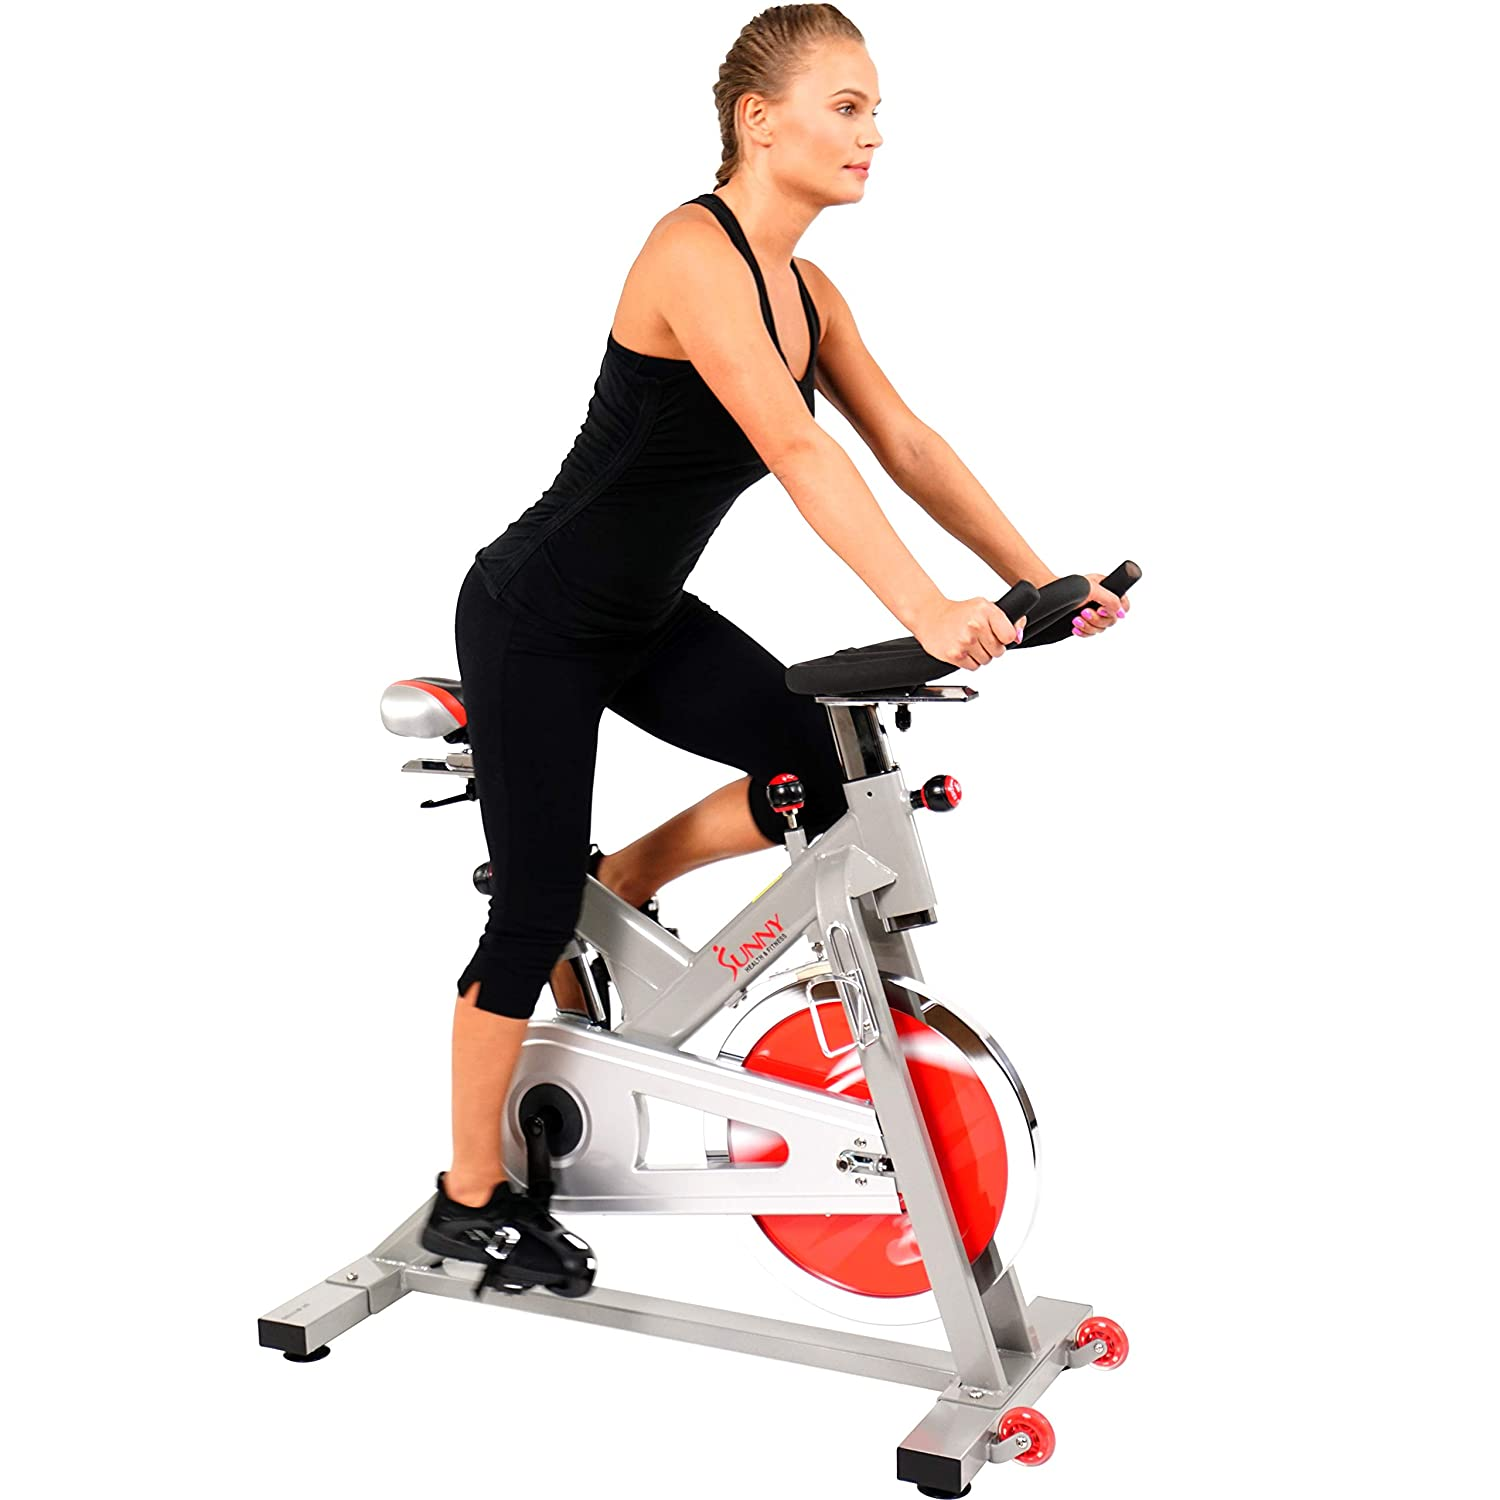 Sunny Health & Fitness Indoor Exercise Stationary Cycle Bike